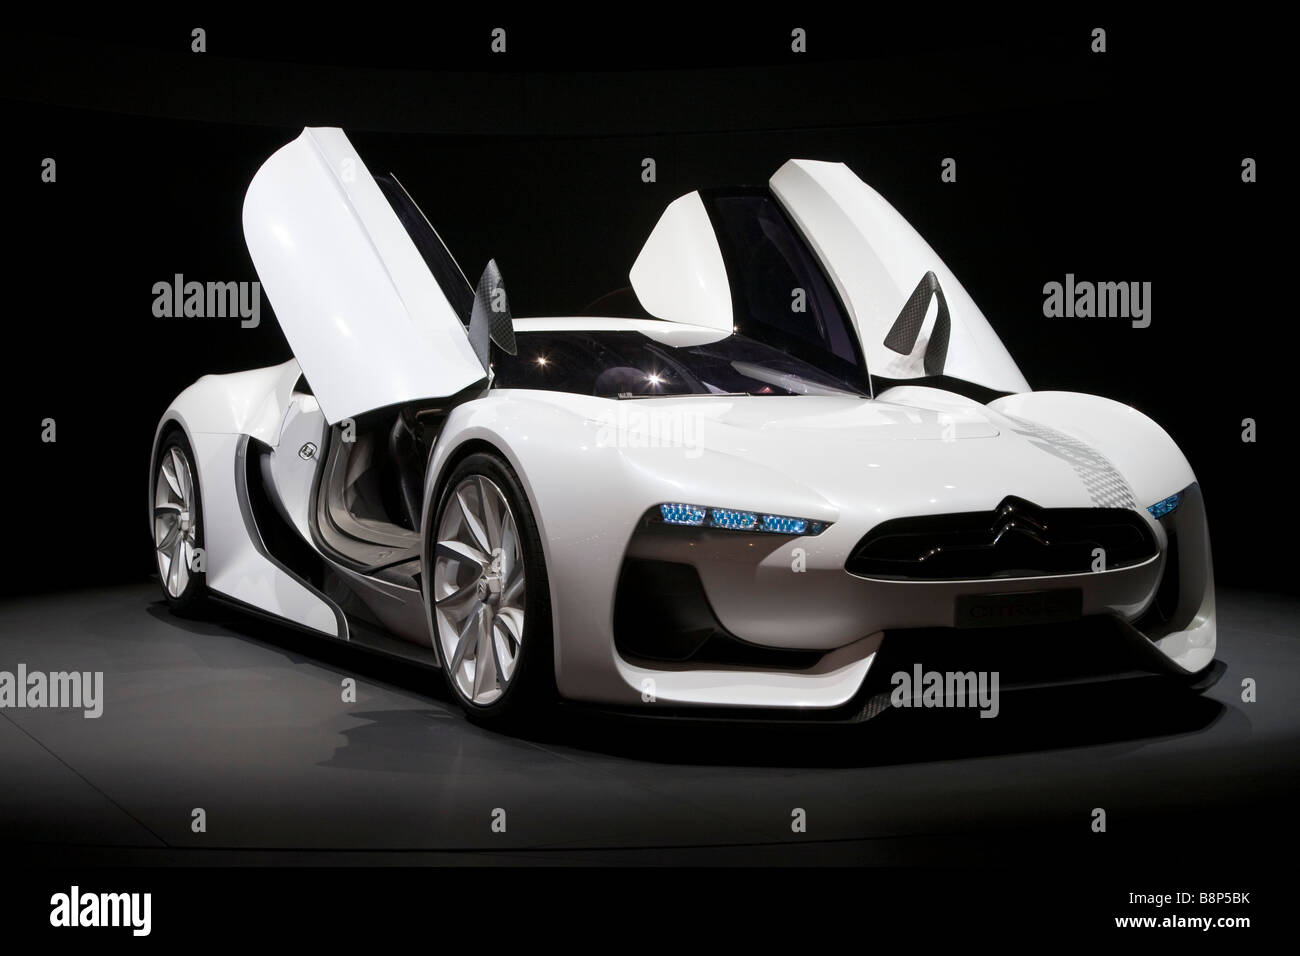 The GT by Citroën sports car that debuted as a concept car on October 2 at the 2008 Paris Motor show. - Stock Image